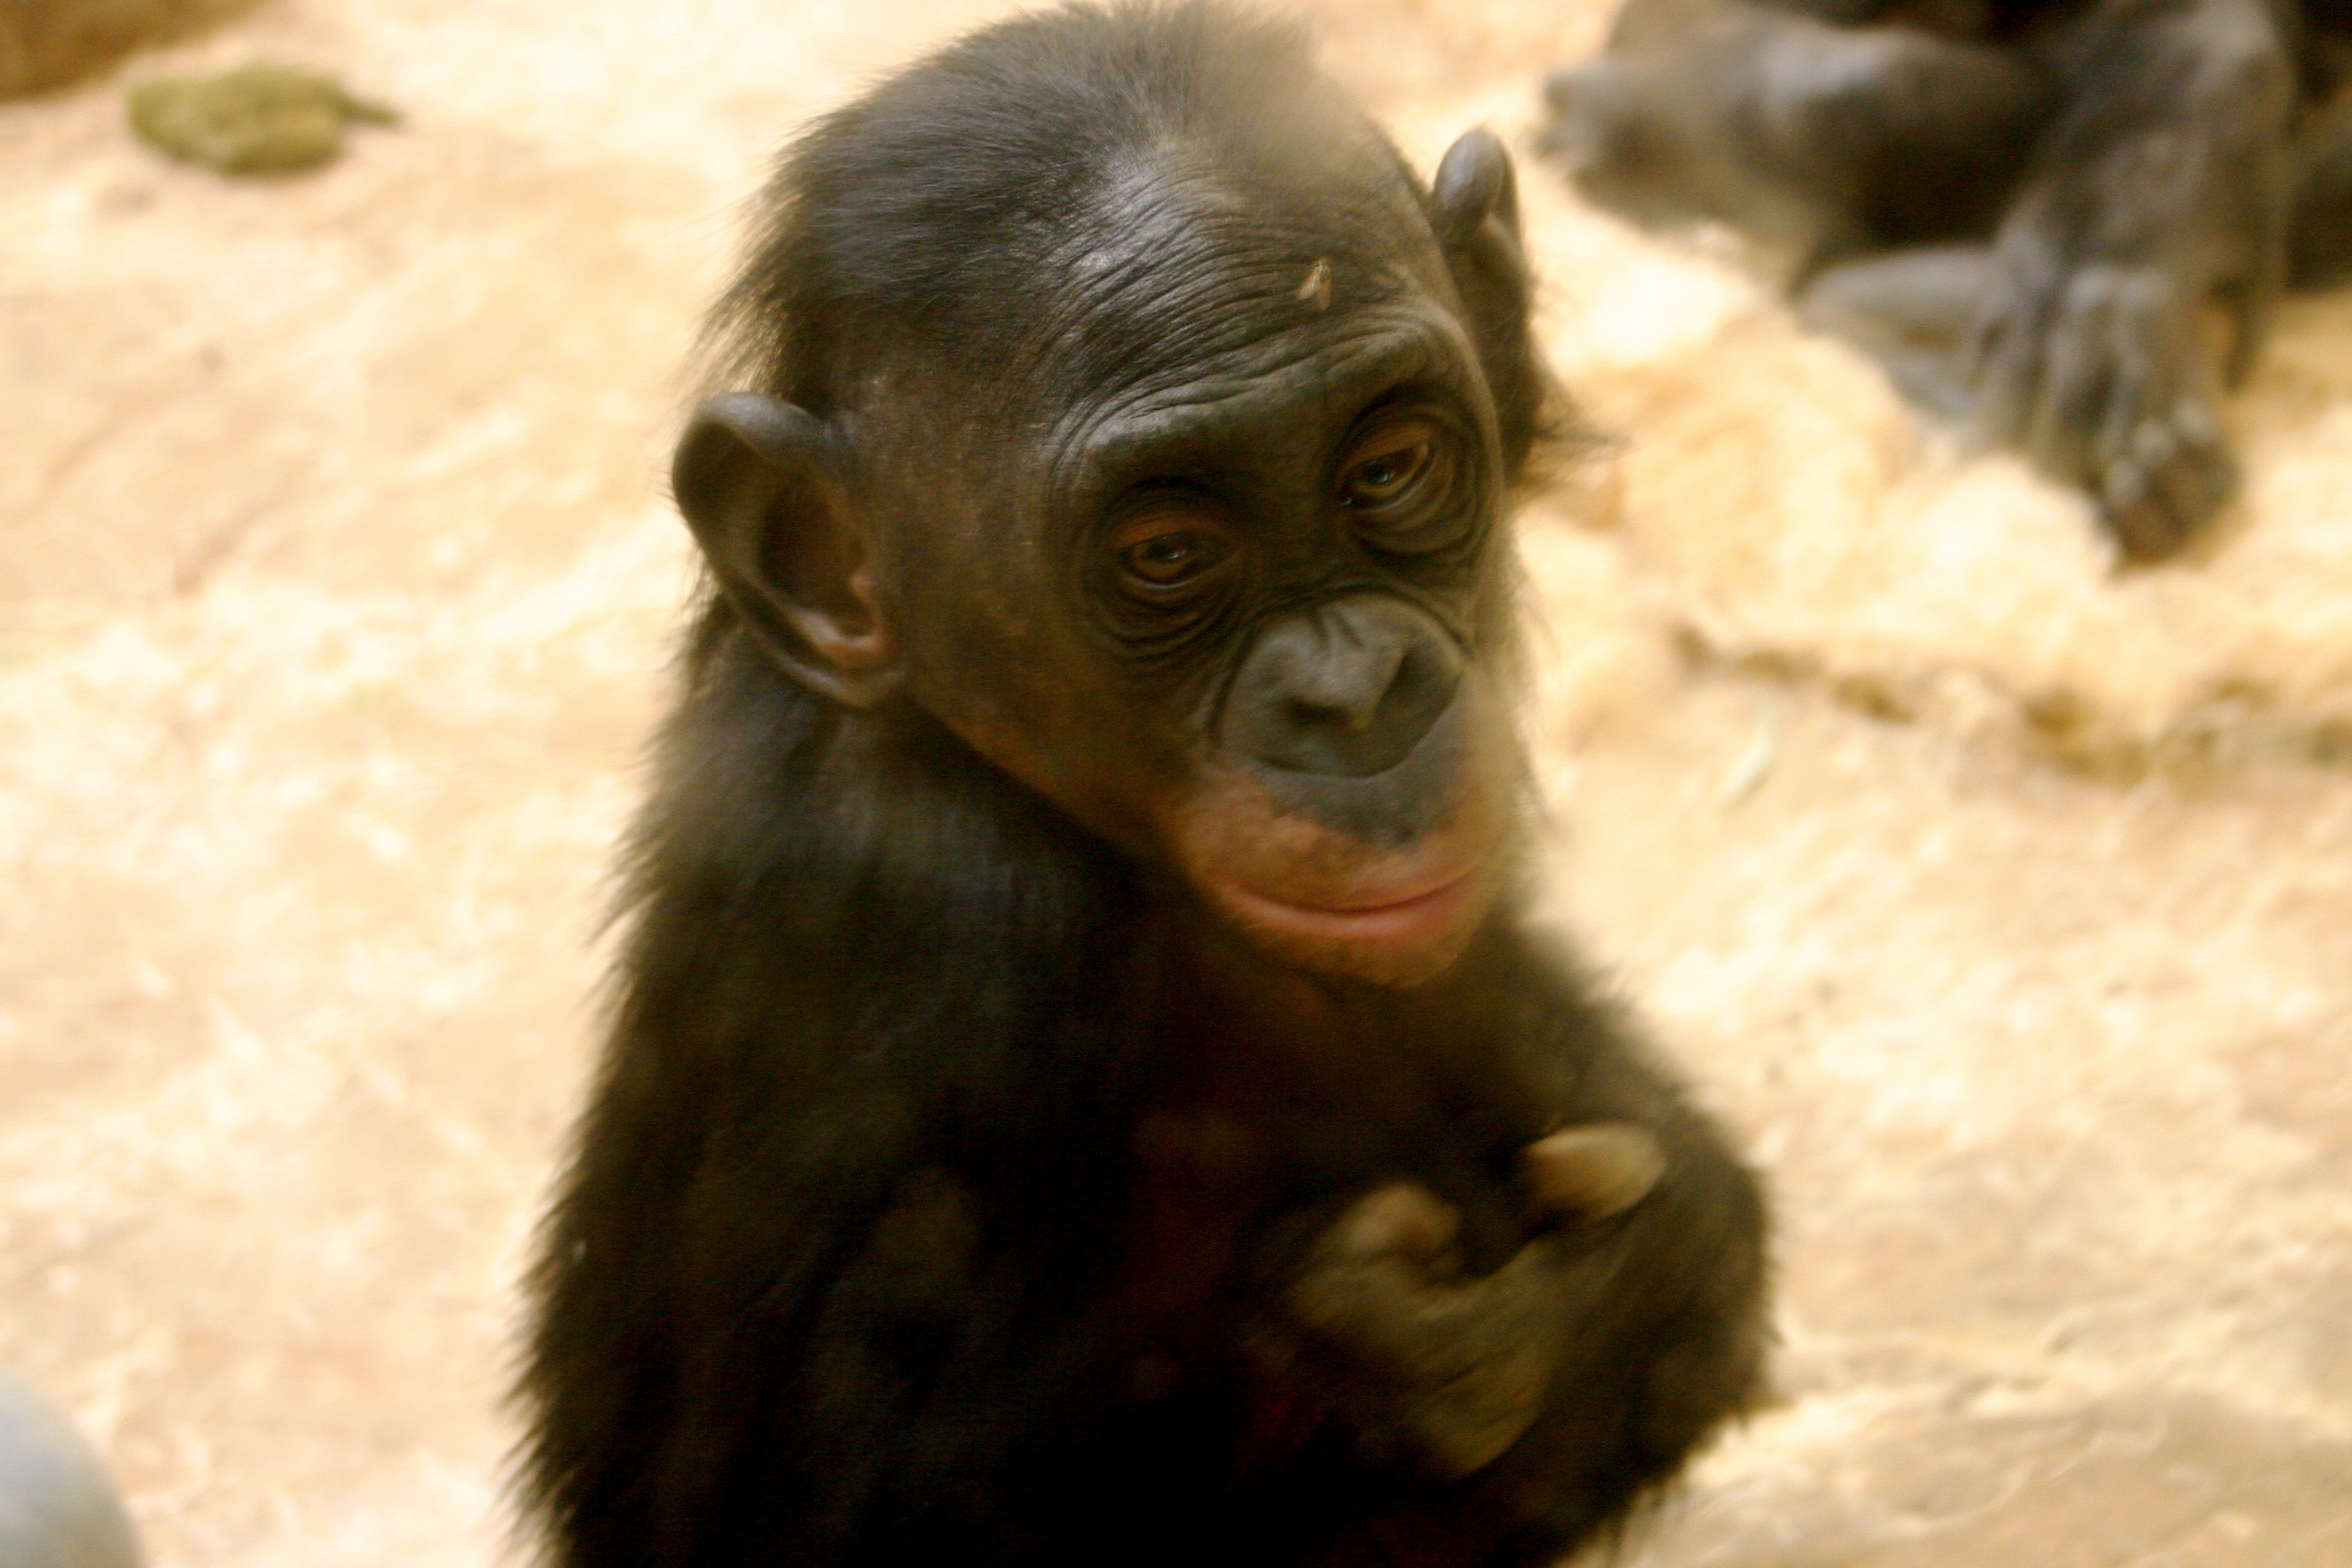 File:Baby Bonobo.JPG  Wikipedia, the free encyclopedia